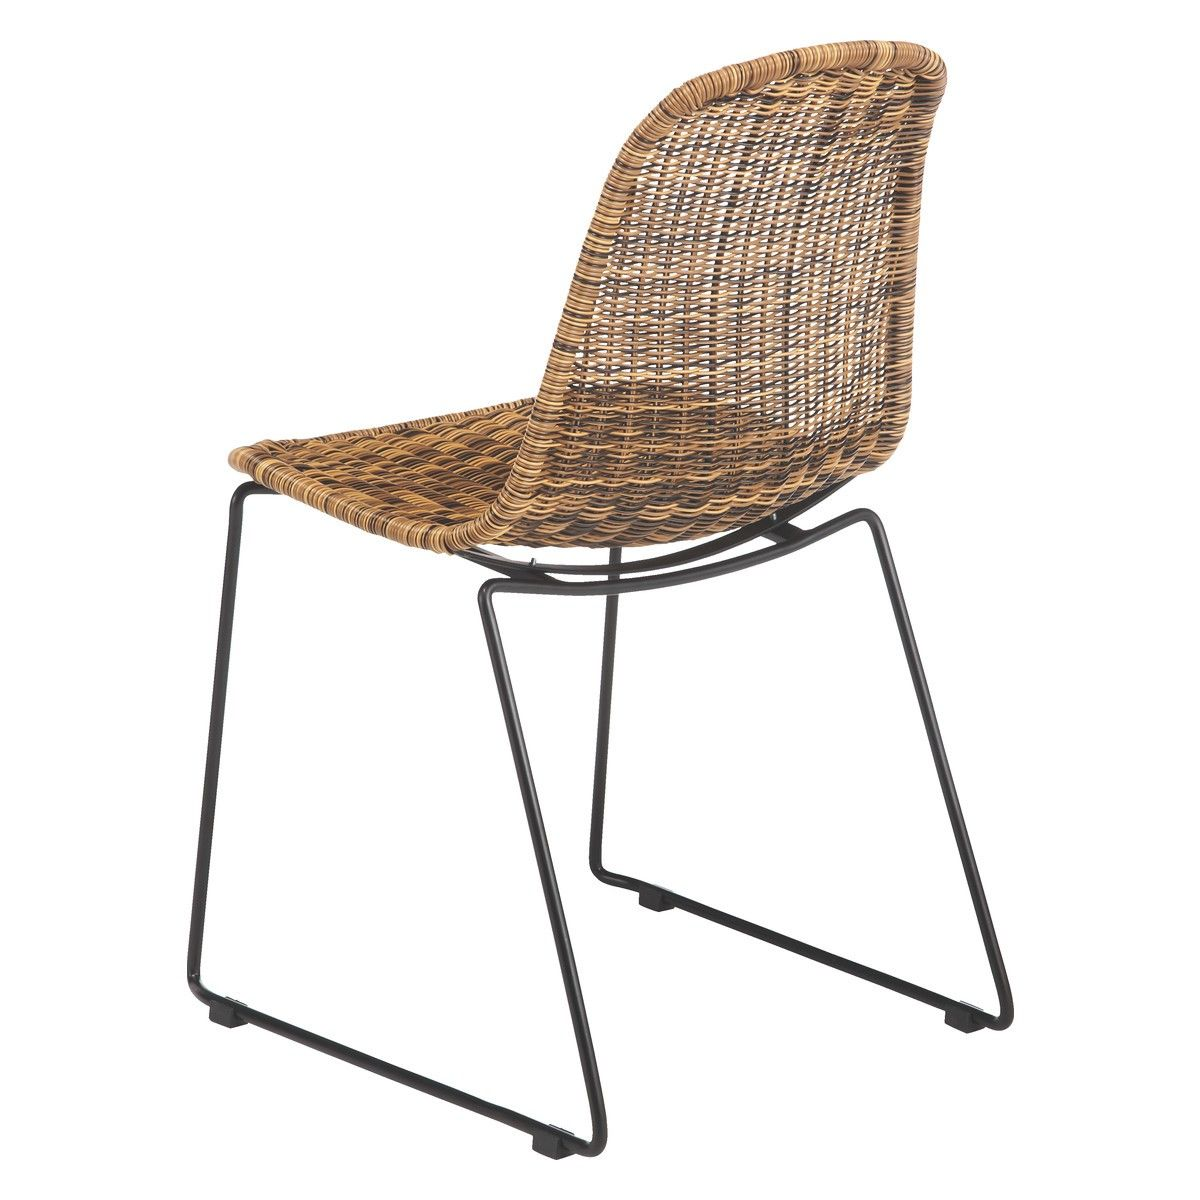 White Wicker Dining Chairs Uk Chair Legs Lowes Mickey Synthetic Rattan Buy Now At Habitat Als